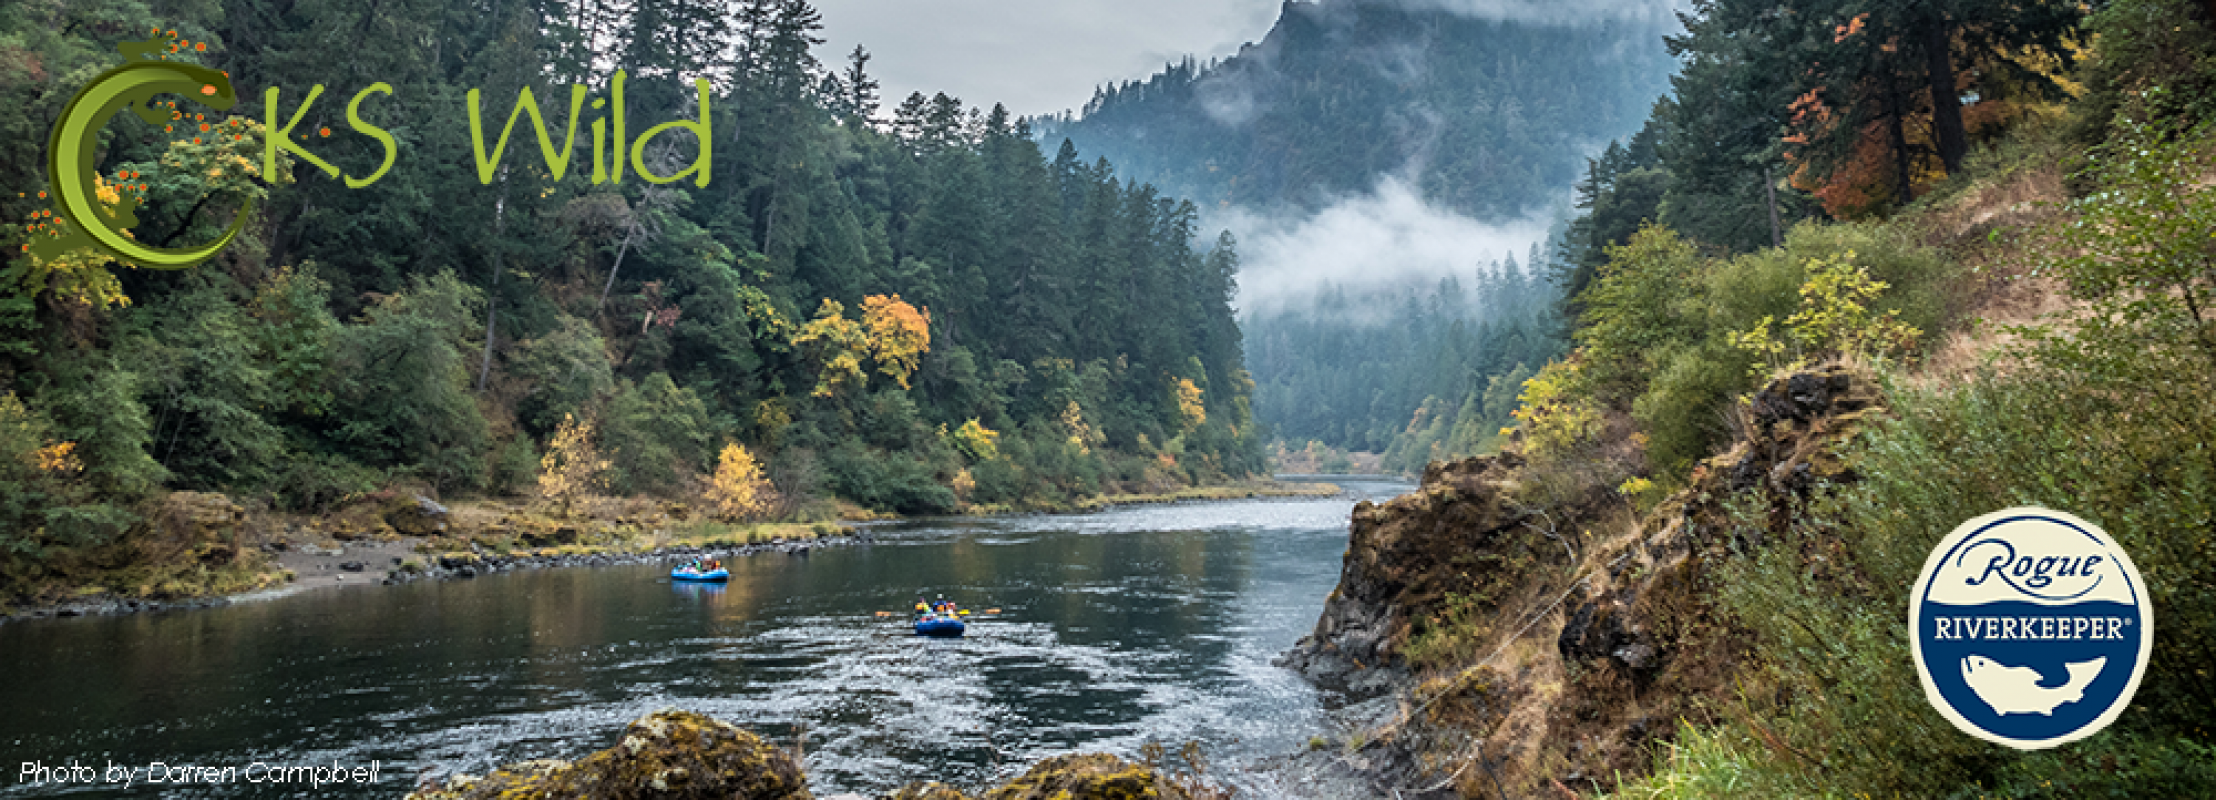 Let's Join KS Wild and Thank Senators Wyden and Merkley for Protecting Our Wild Rivers